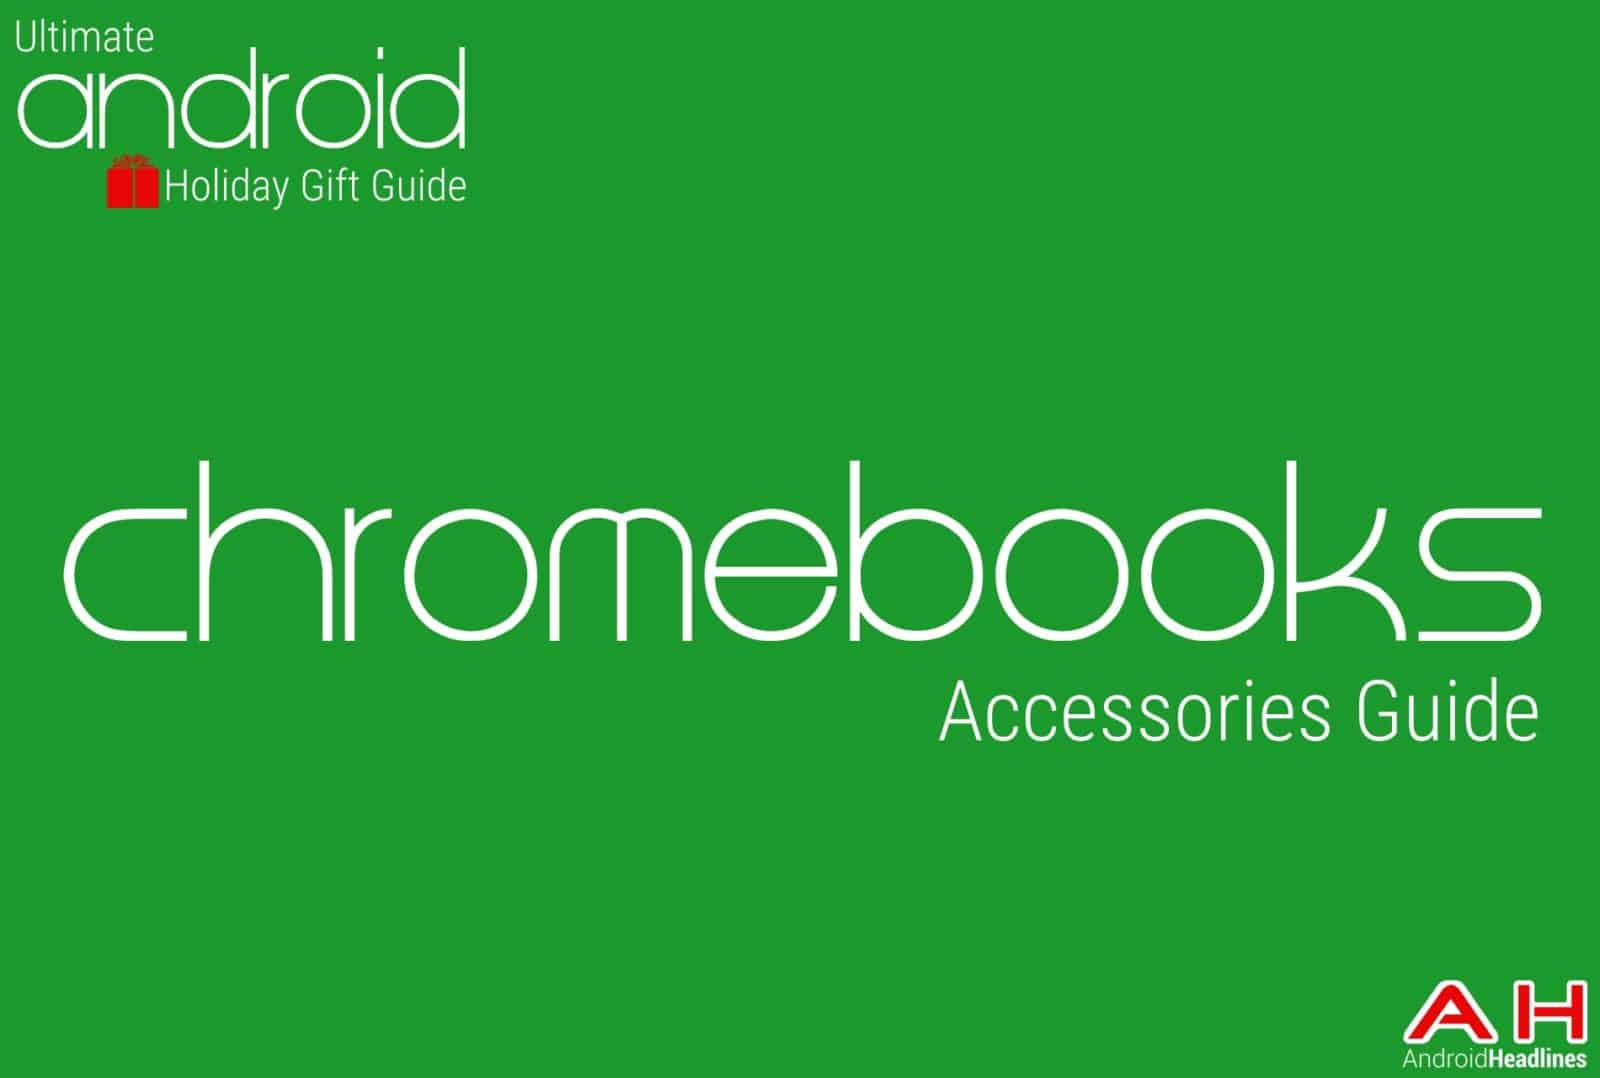 Best Chromebook Accessories Guide - Holiday Gift Guide Top 10